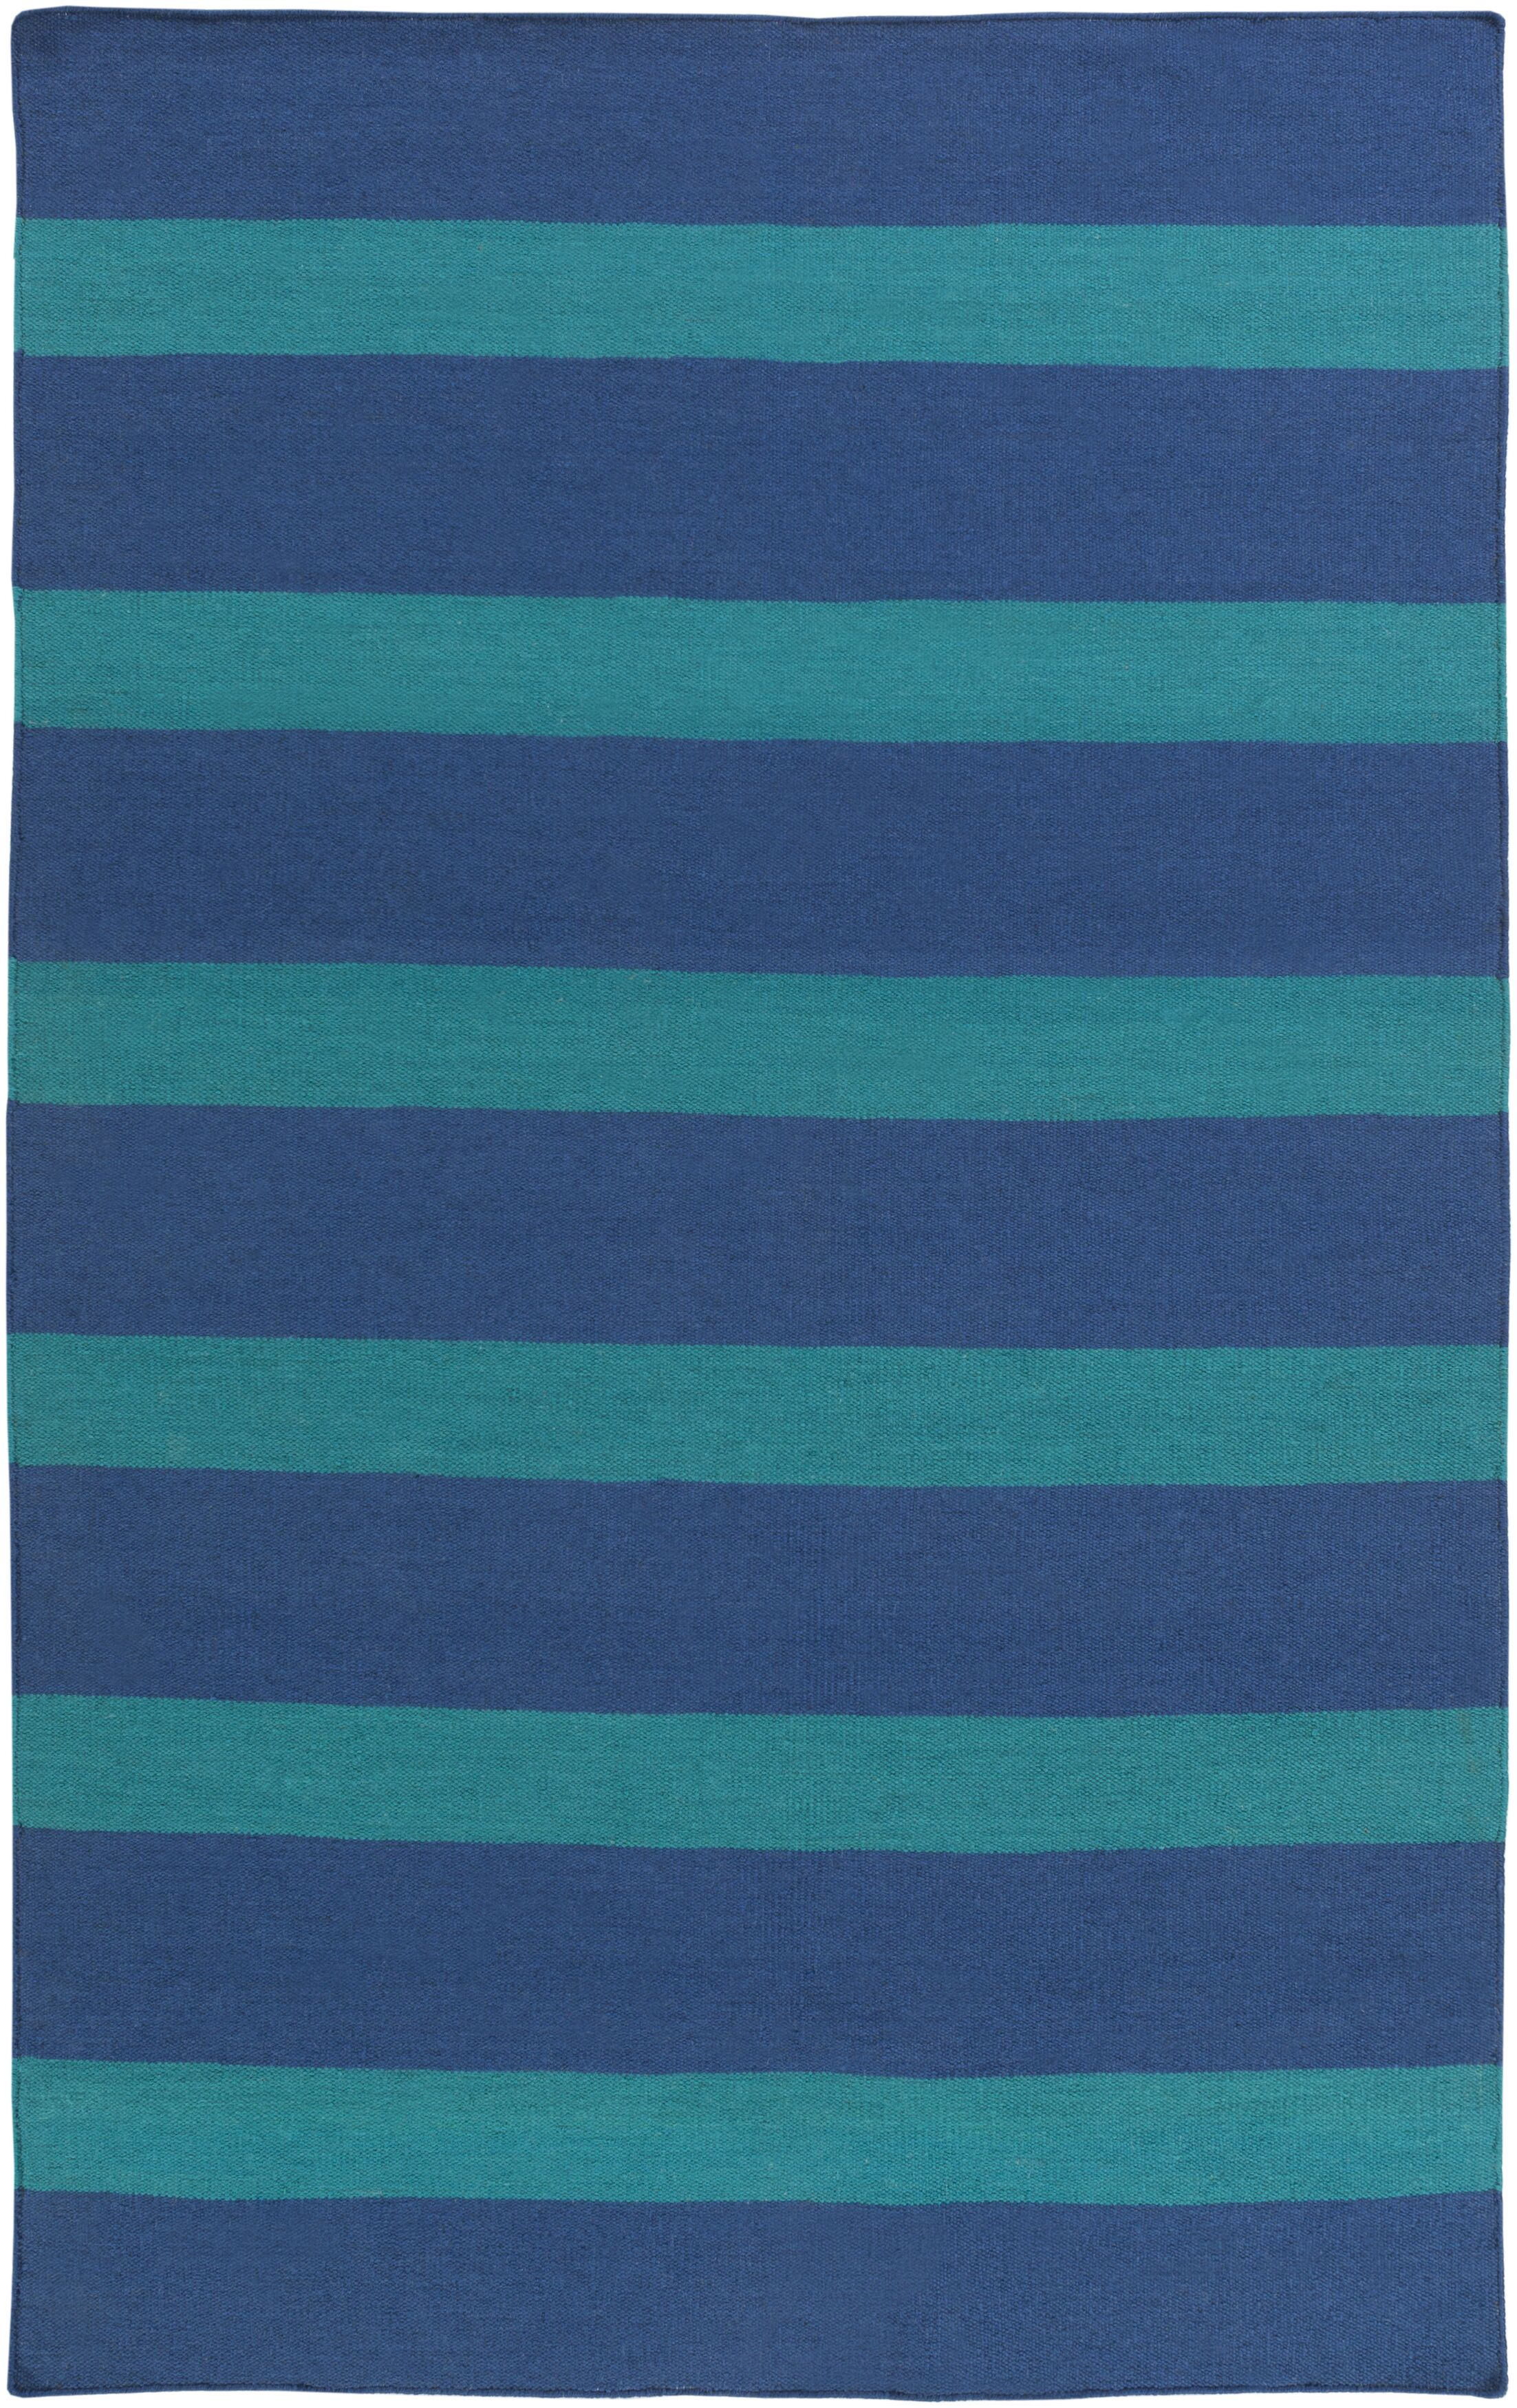 Peugeot Hand-Woven Blue/Green Outdoor Area Rug Rug Size: Rectangle 3'6